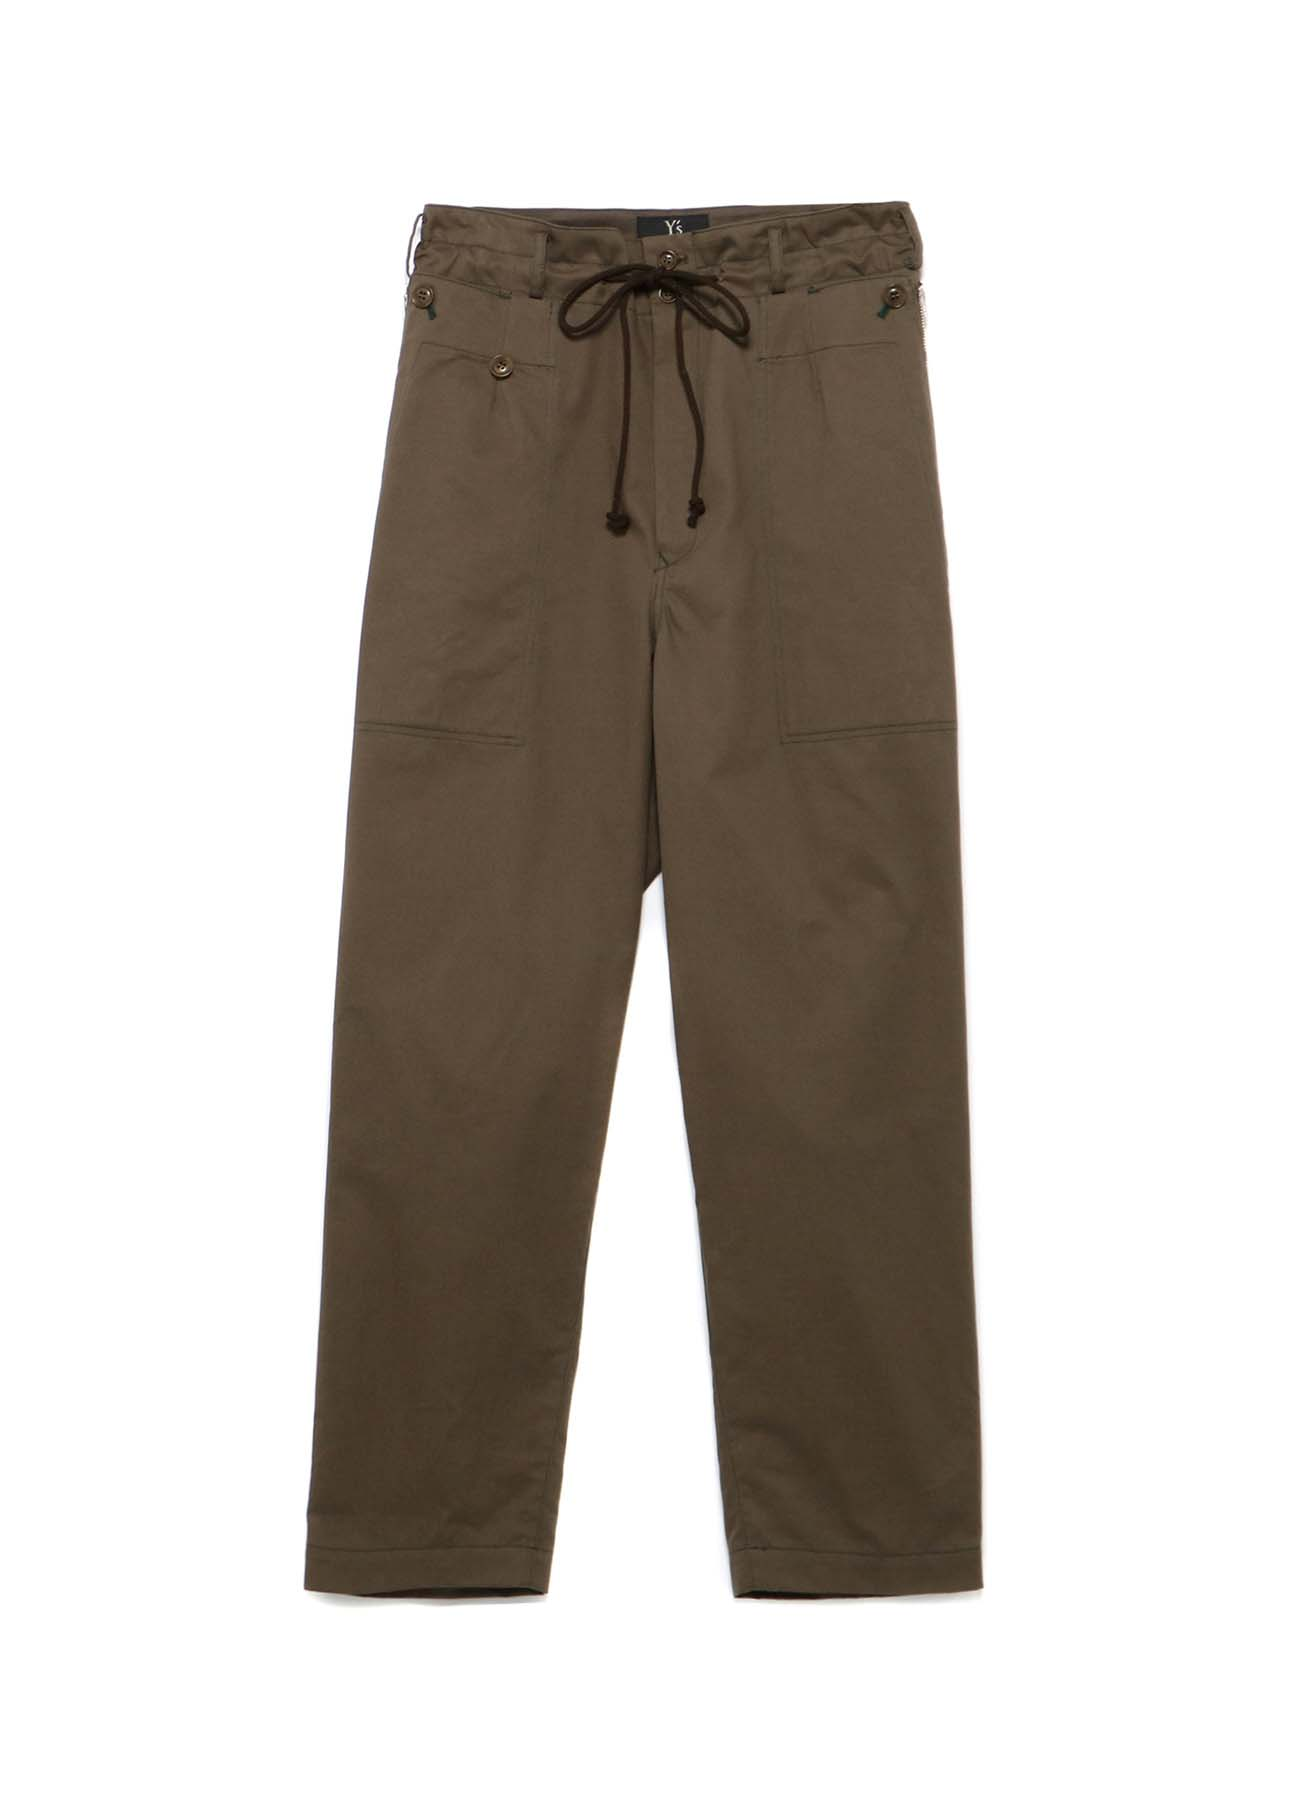 SOFT CHINO CLOTH ZIPPER POCKET PANTS